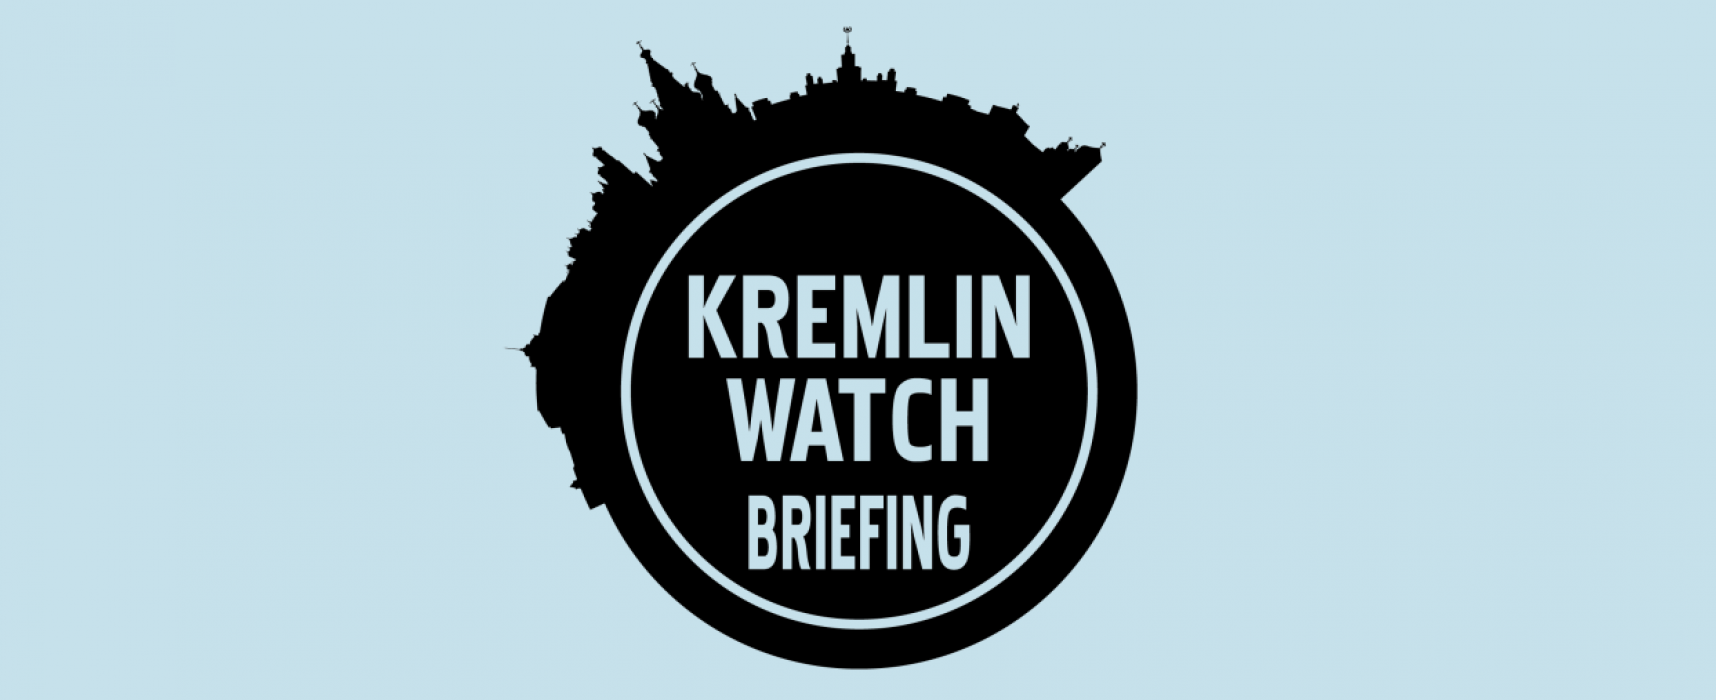 Kremlin Watch Briefing: Half of Europeans potentially exposed to disinformation before the elections